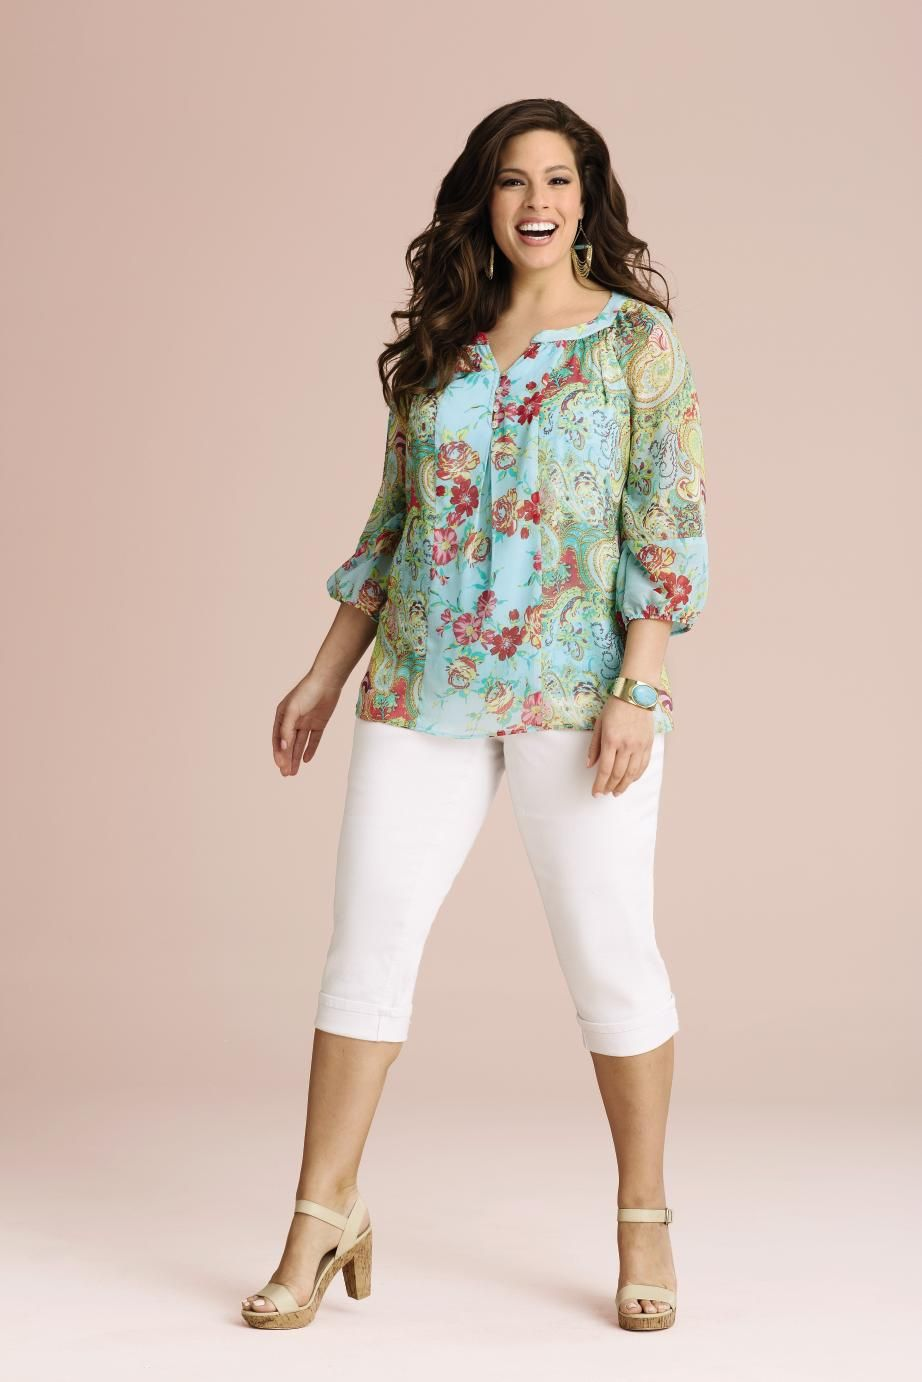 Fig Flower Floral And Paisley Print Blouse Steinmart Paisley Print Blouse Clothes Clothes For Women [ 1382 x 922 Pixel ]